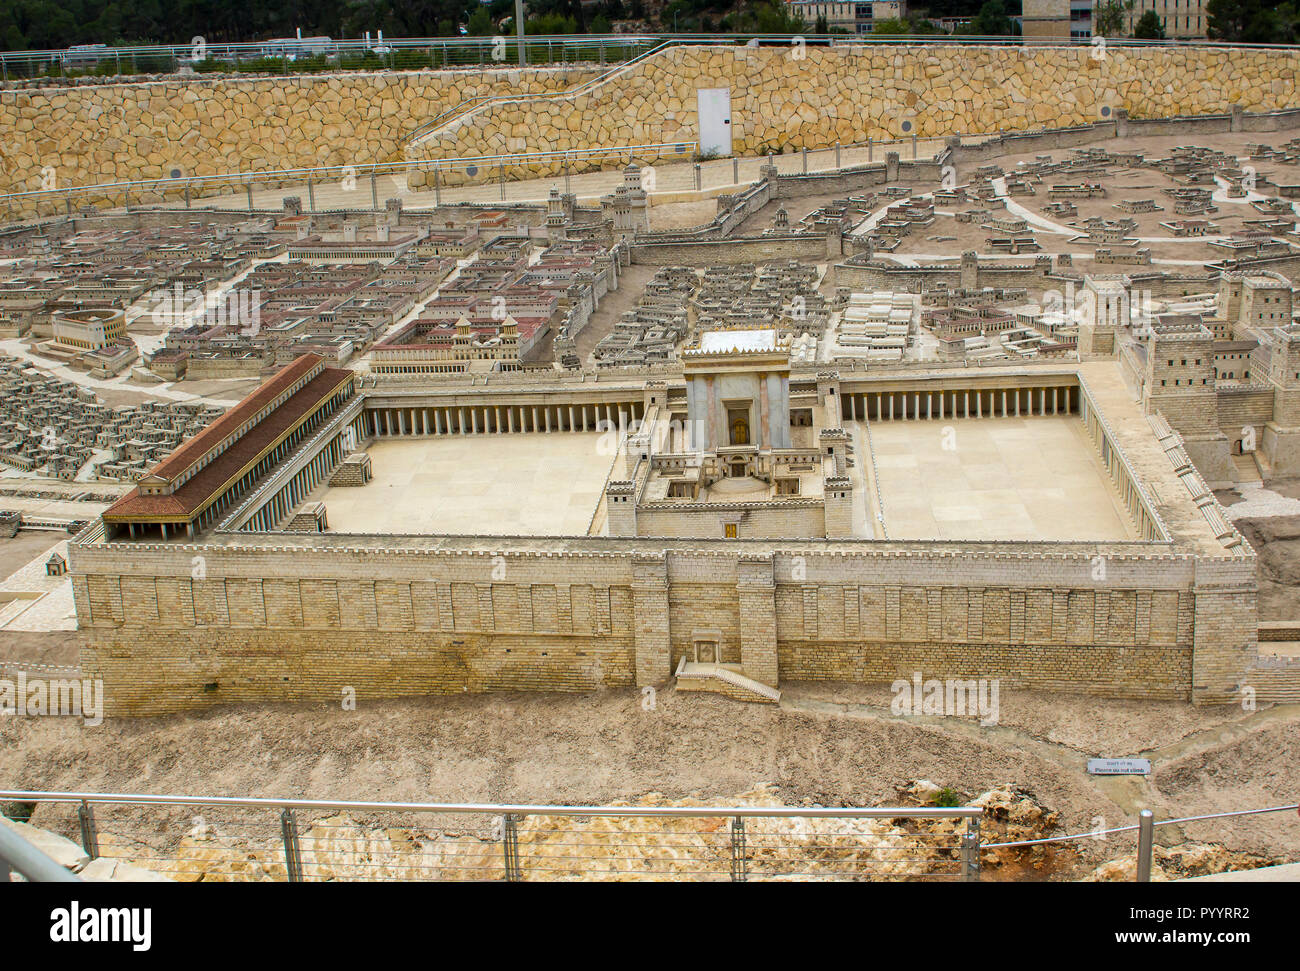 9 May 2018  the outdoor scale model of the ancient city of Jerusalem with Herod's Temple at the Israel Museum in Jerusalem. The model has many arbitra Stock Photo